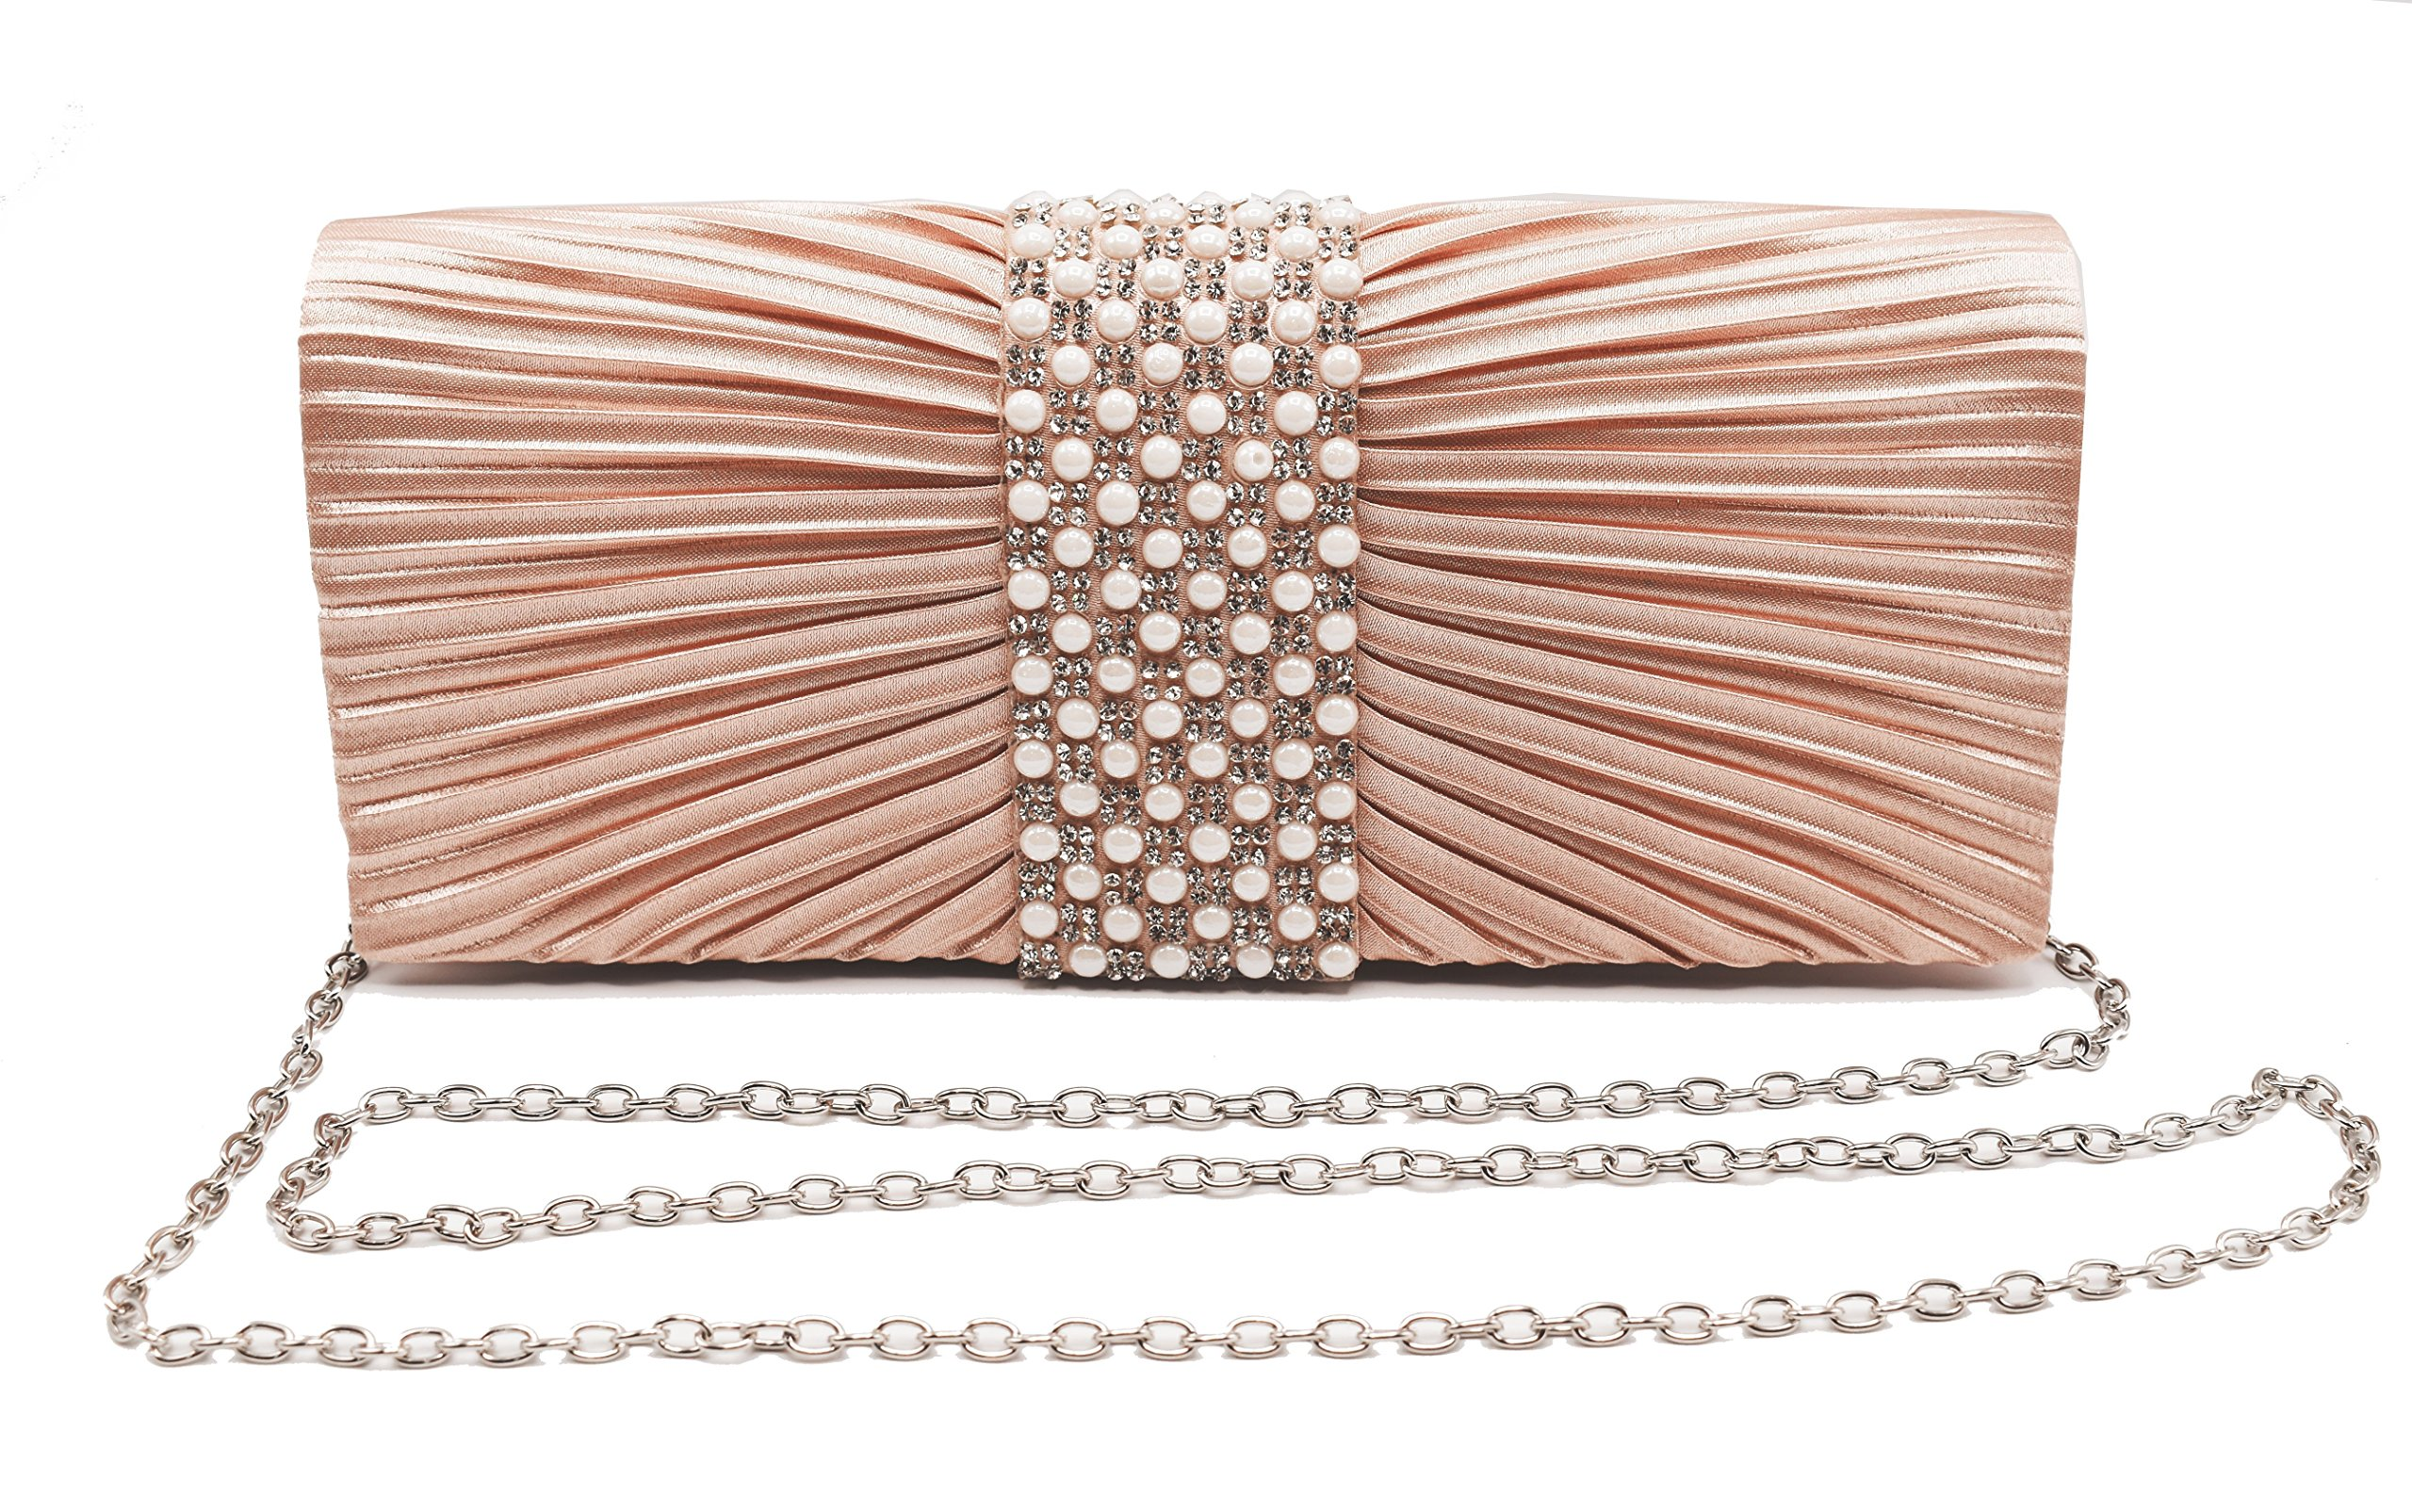 Womens Satin Clutch with Pearl and Diamond Evening Handbag for Party Cocktail Wedding Purse Wallet Bag (ROSE GOLD)